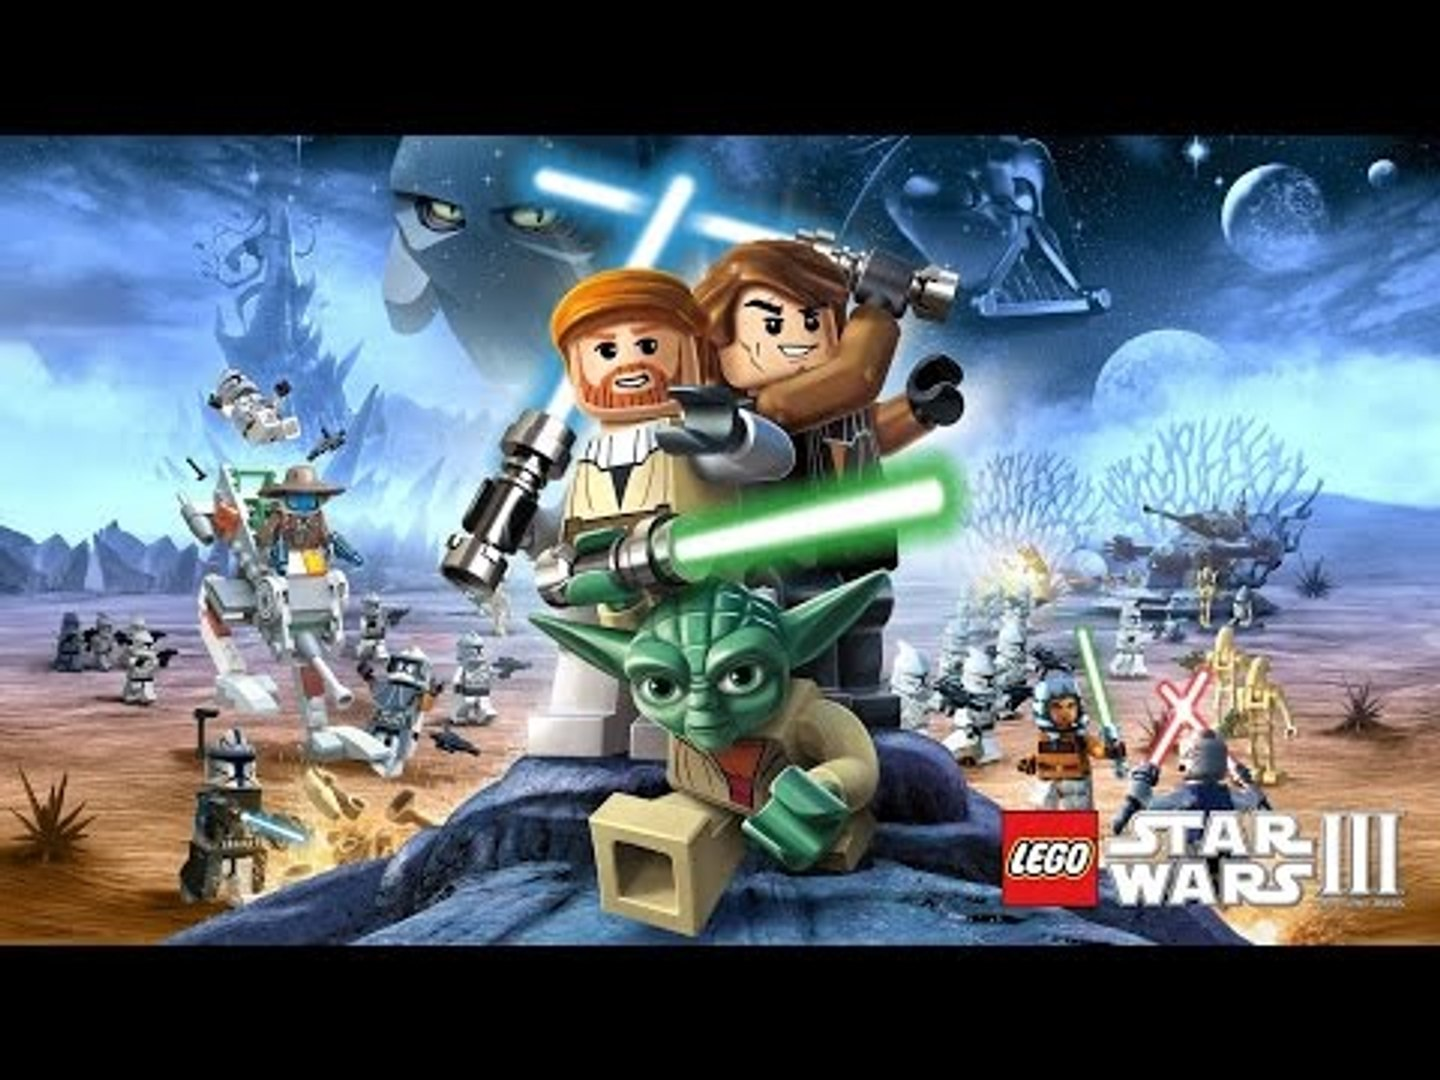 #LEGO Star Wars 3 The Clone Wars Full Game Movie - LEGO Movie Cartoon for Children & Kids